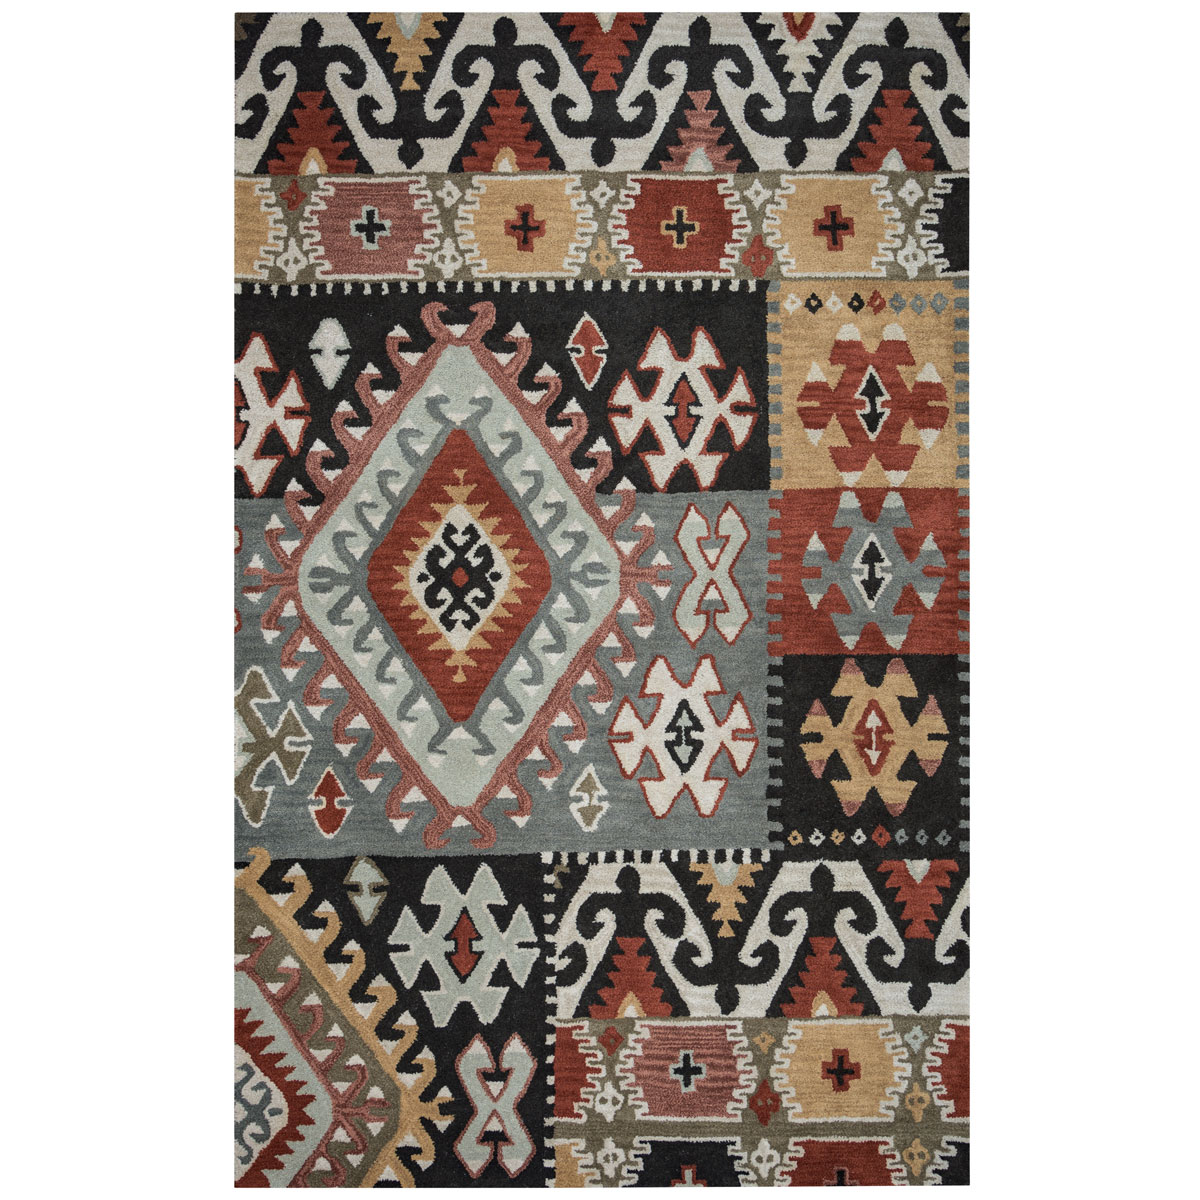 Southwest Geometric Patches Rug - 2 x 8